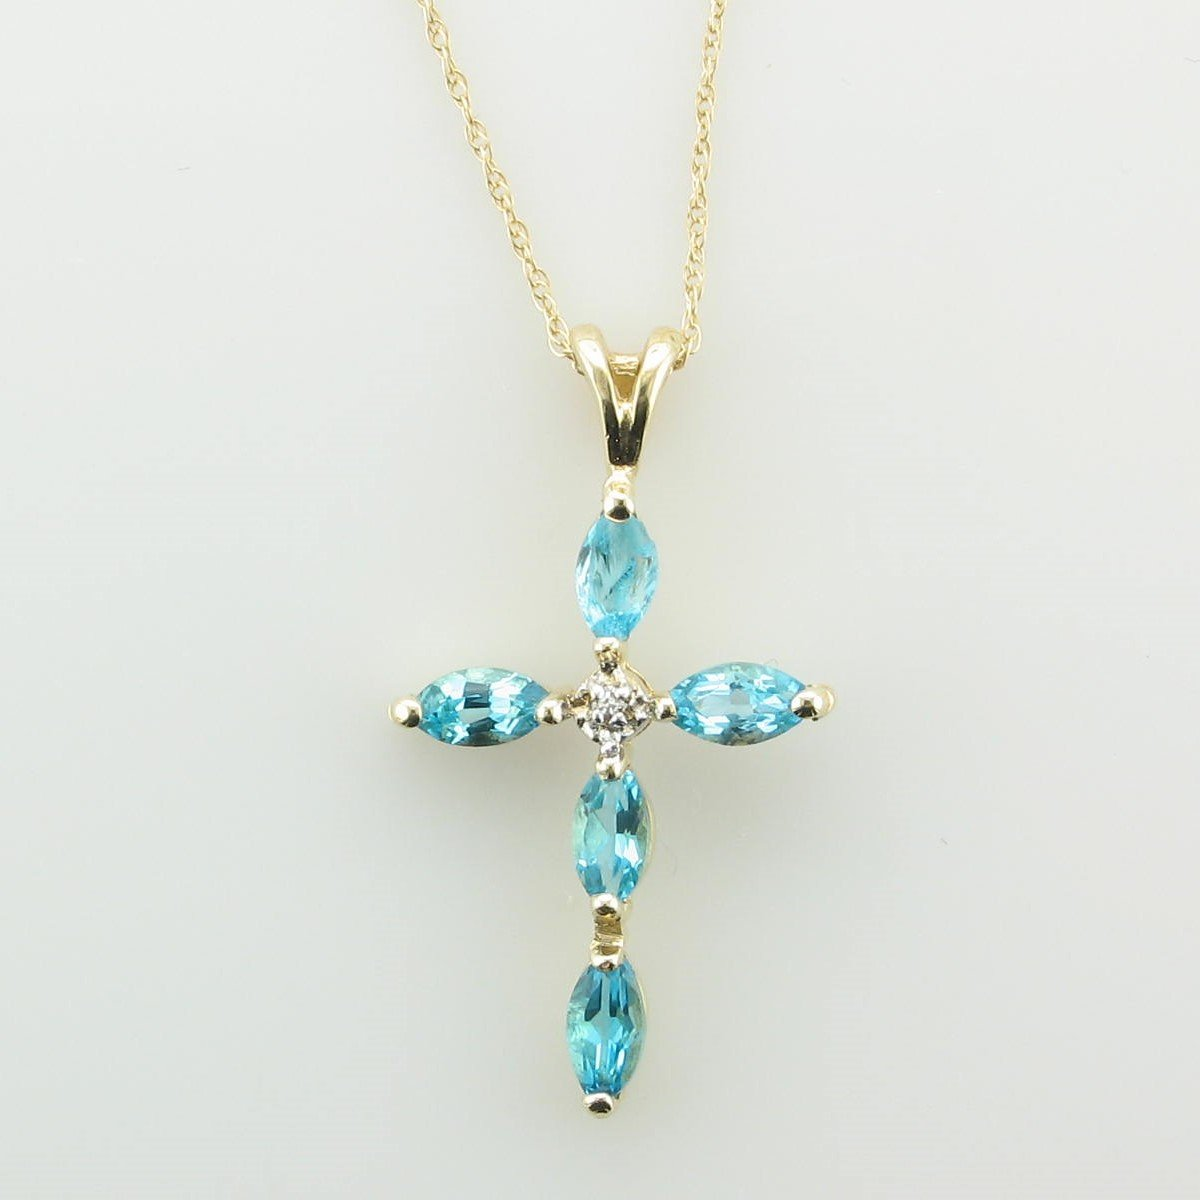 10K Yellow Gold Marquise Blue Topaz and Diamond Necklace